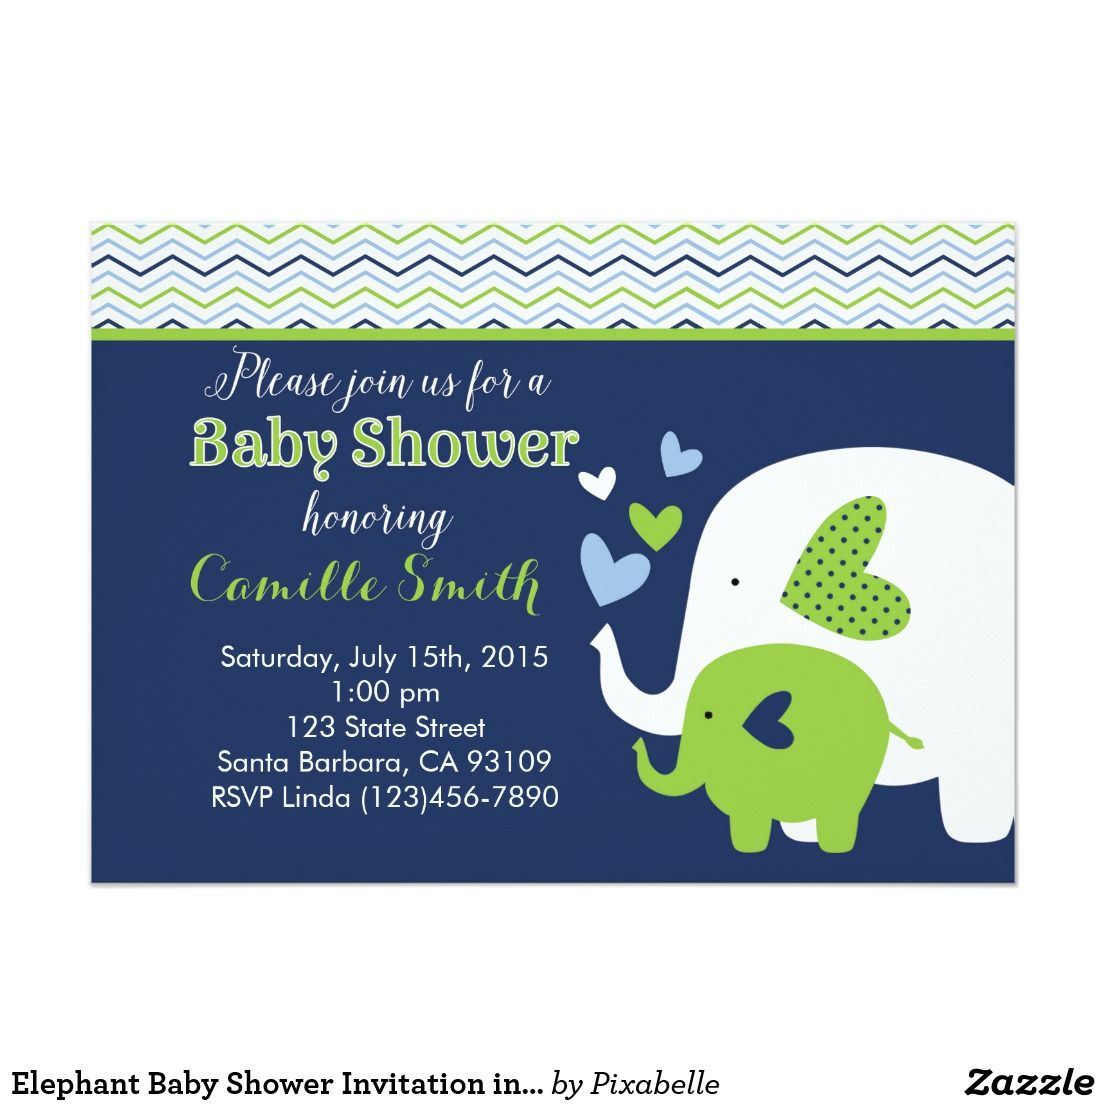 Elephant Baby Shower Invitation in Navy and Green   Elephant baby ...